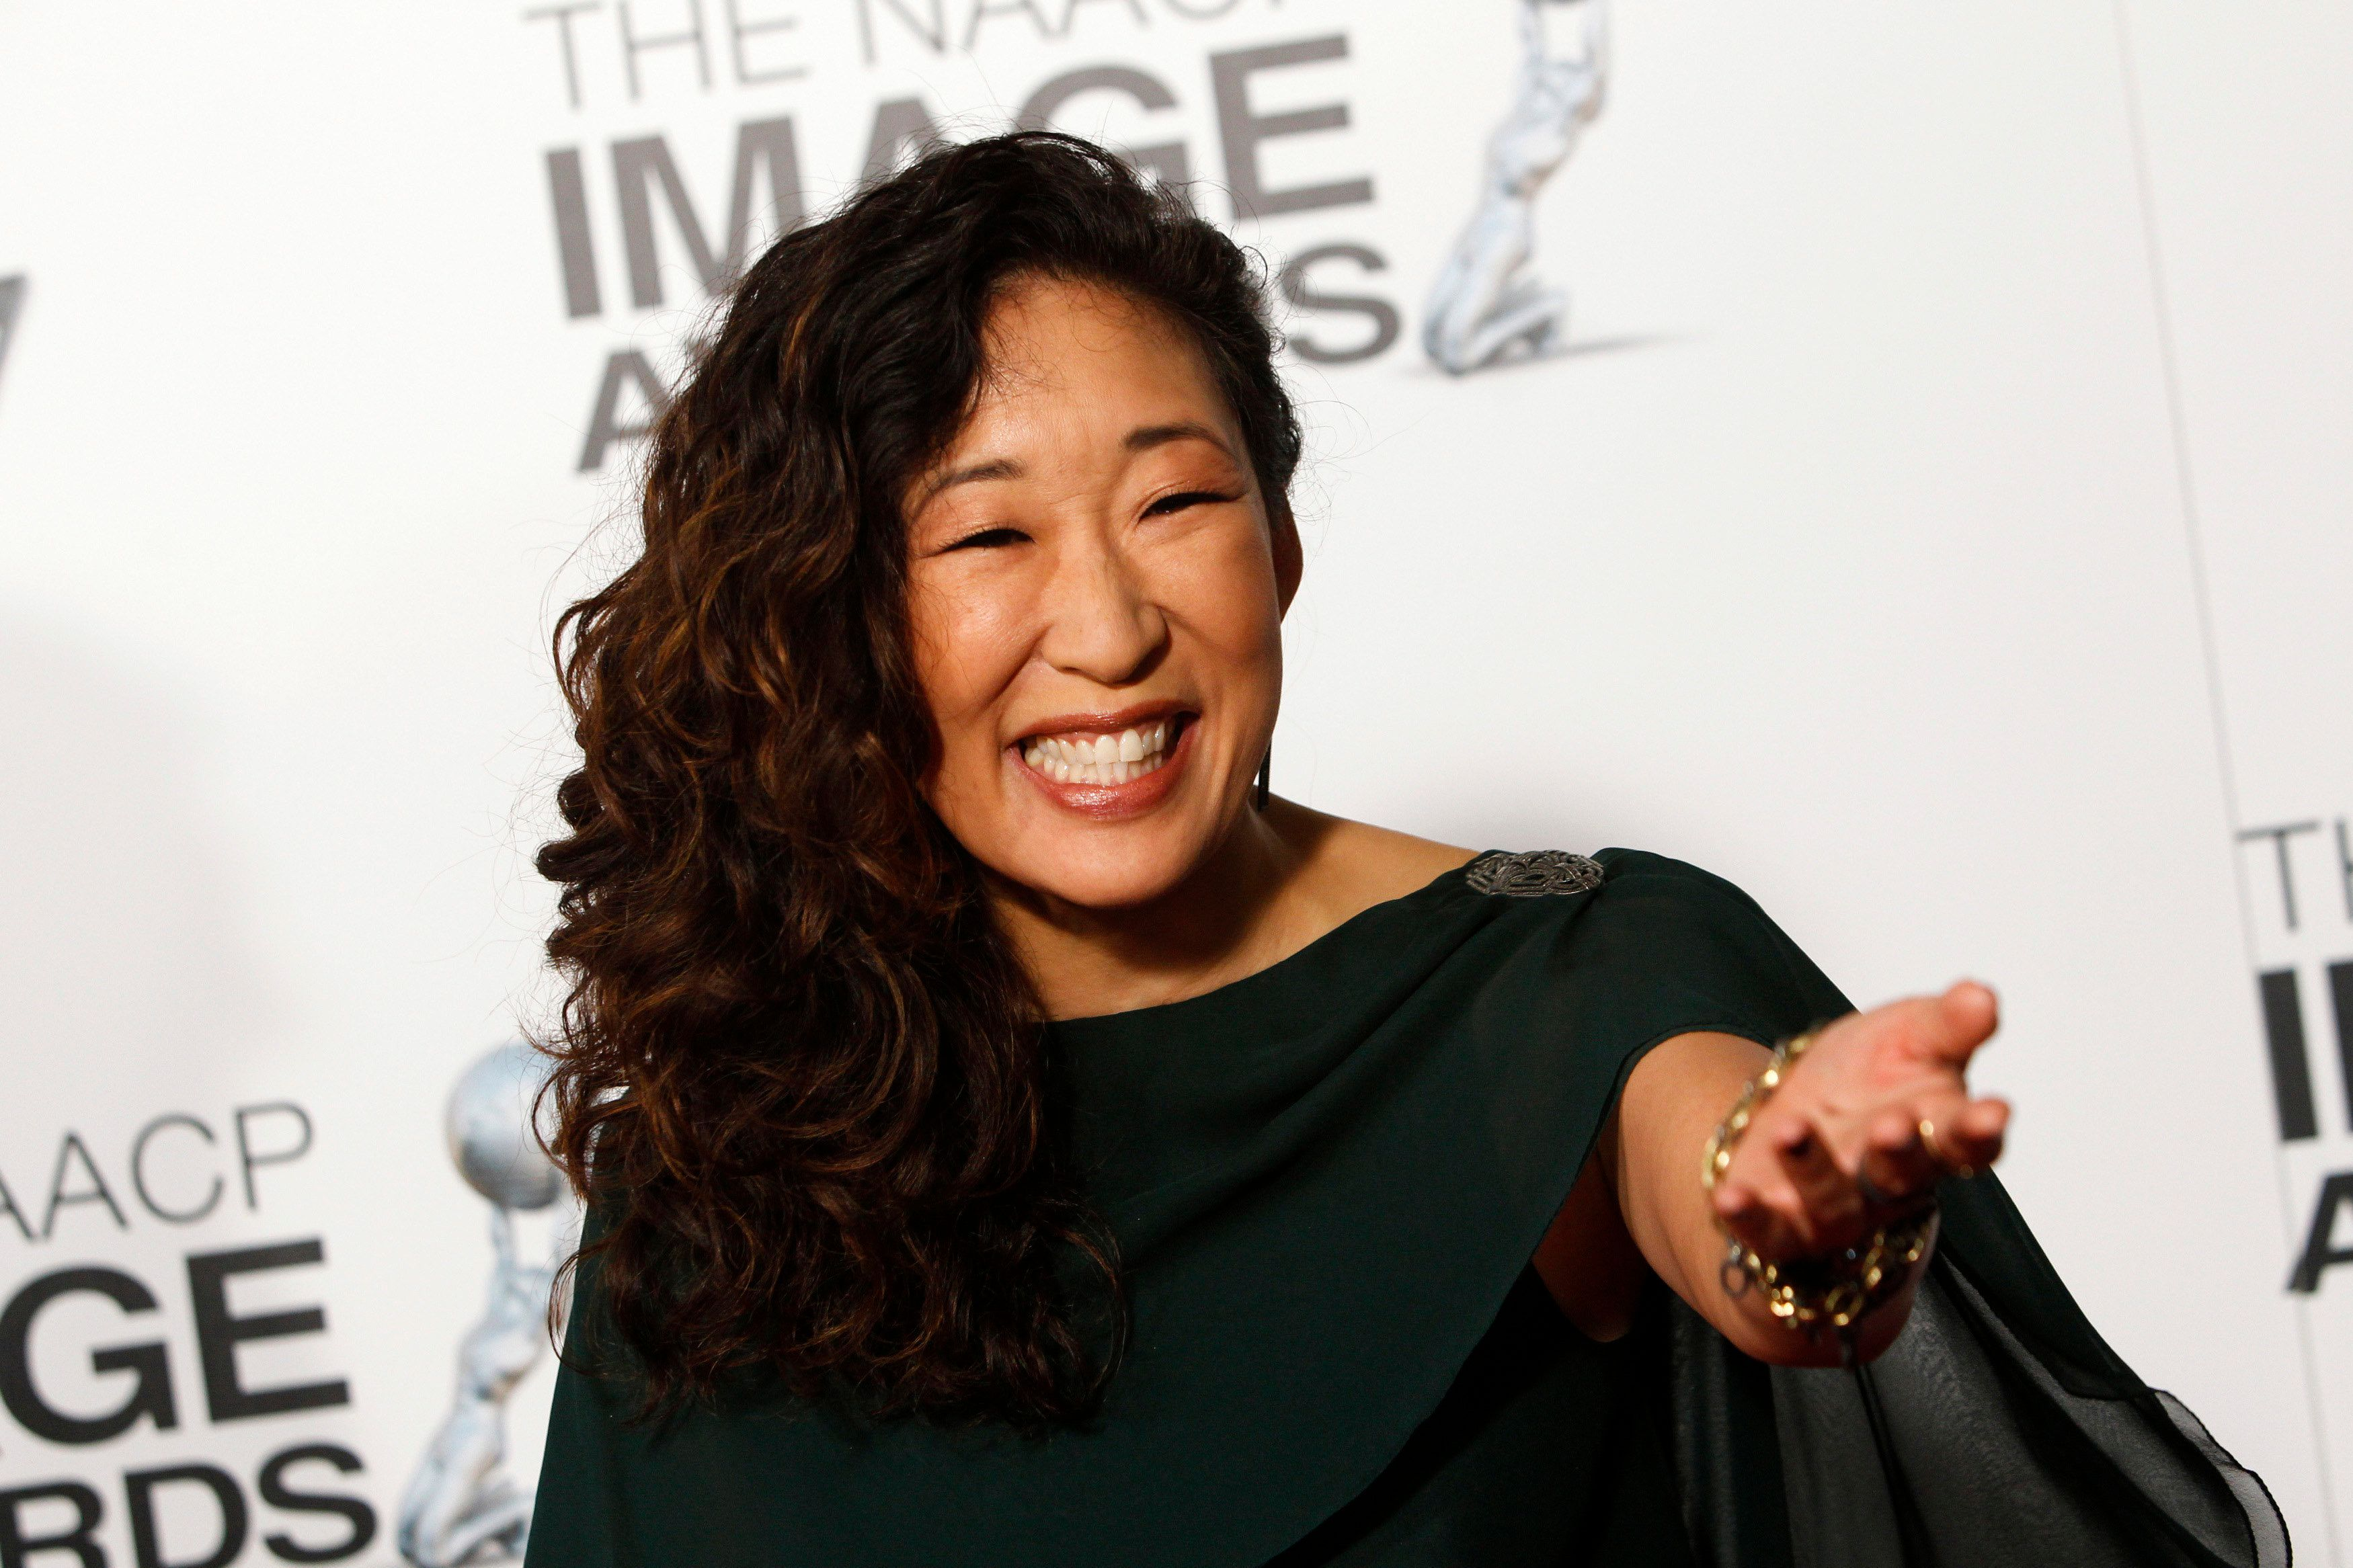 Sandra Oh Is First Asian Woman Nominated For Emmy For Lead Actress In A Drama